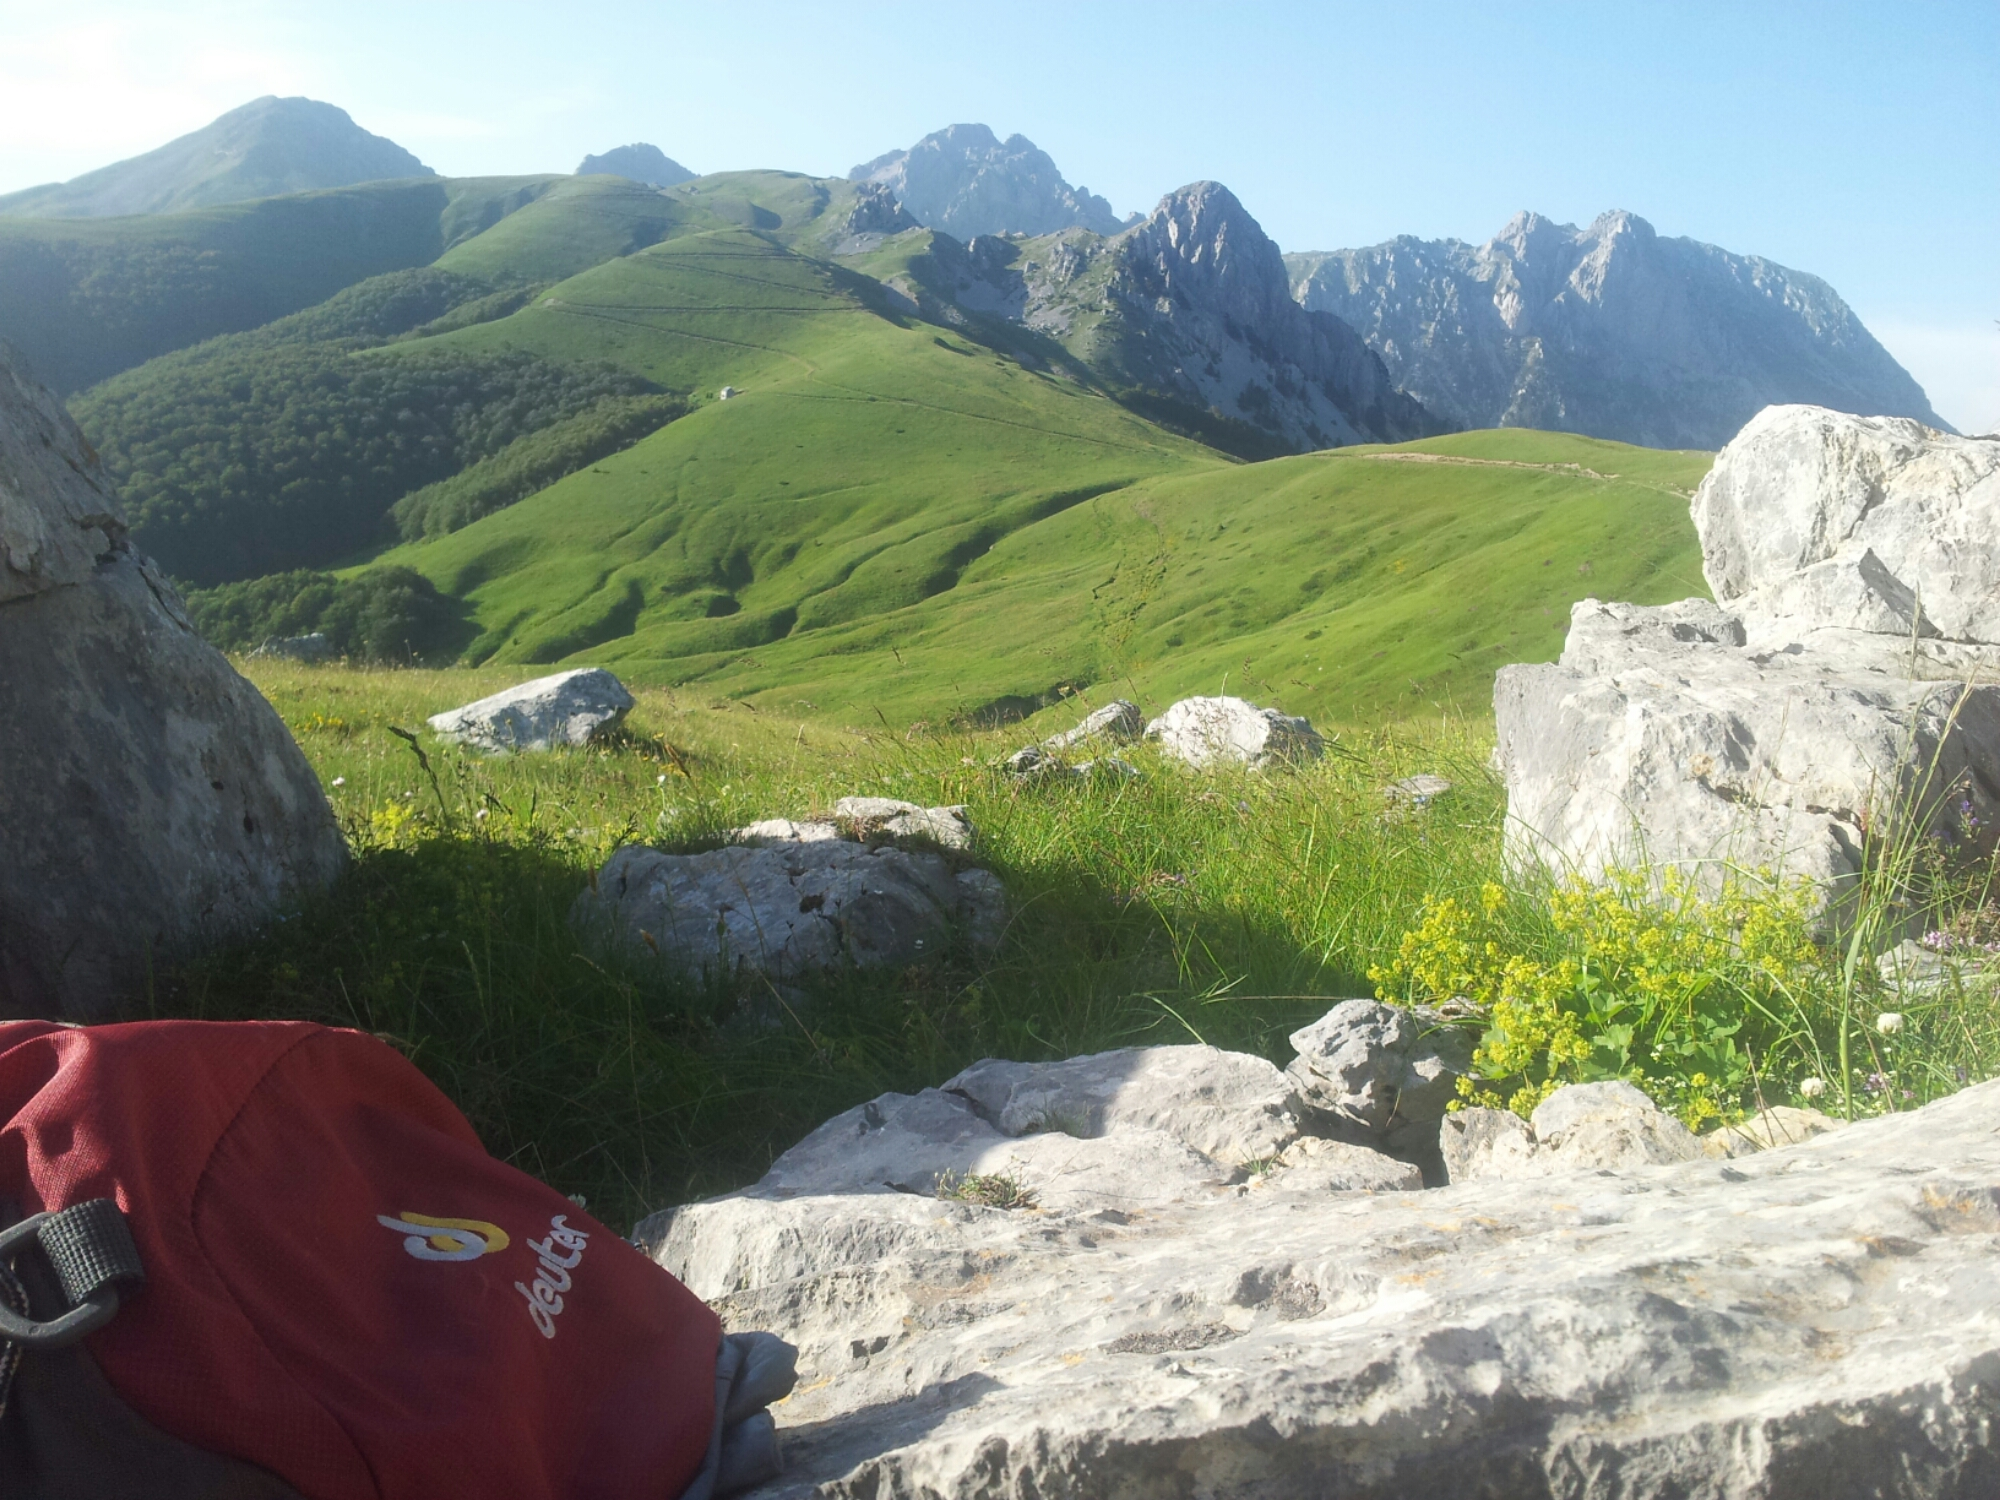 Green_mountains_and_Red_Deuter_backpack_Crvena_Perla